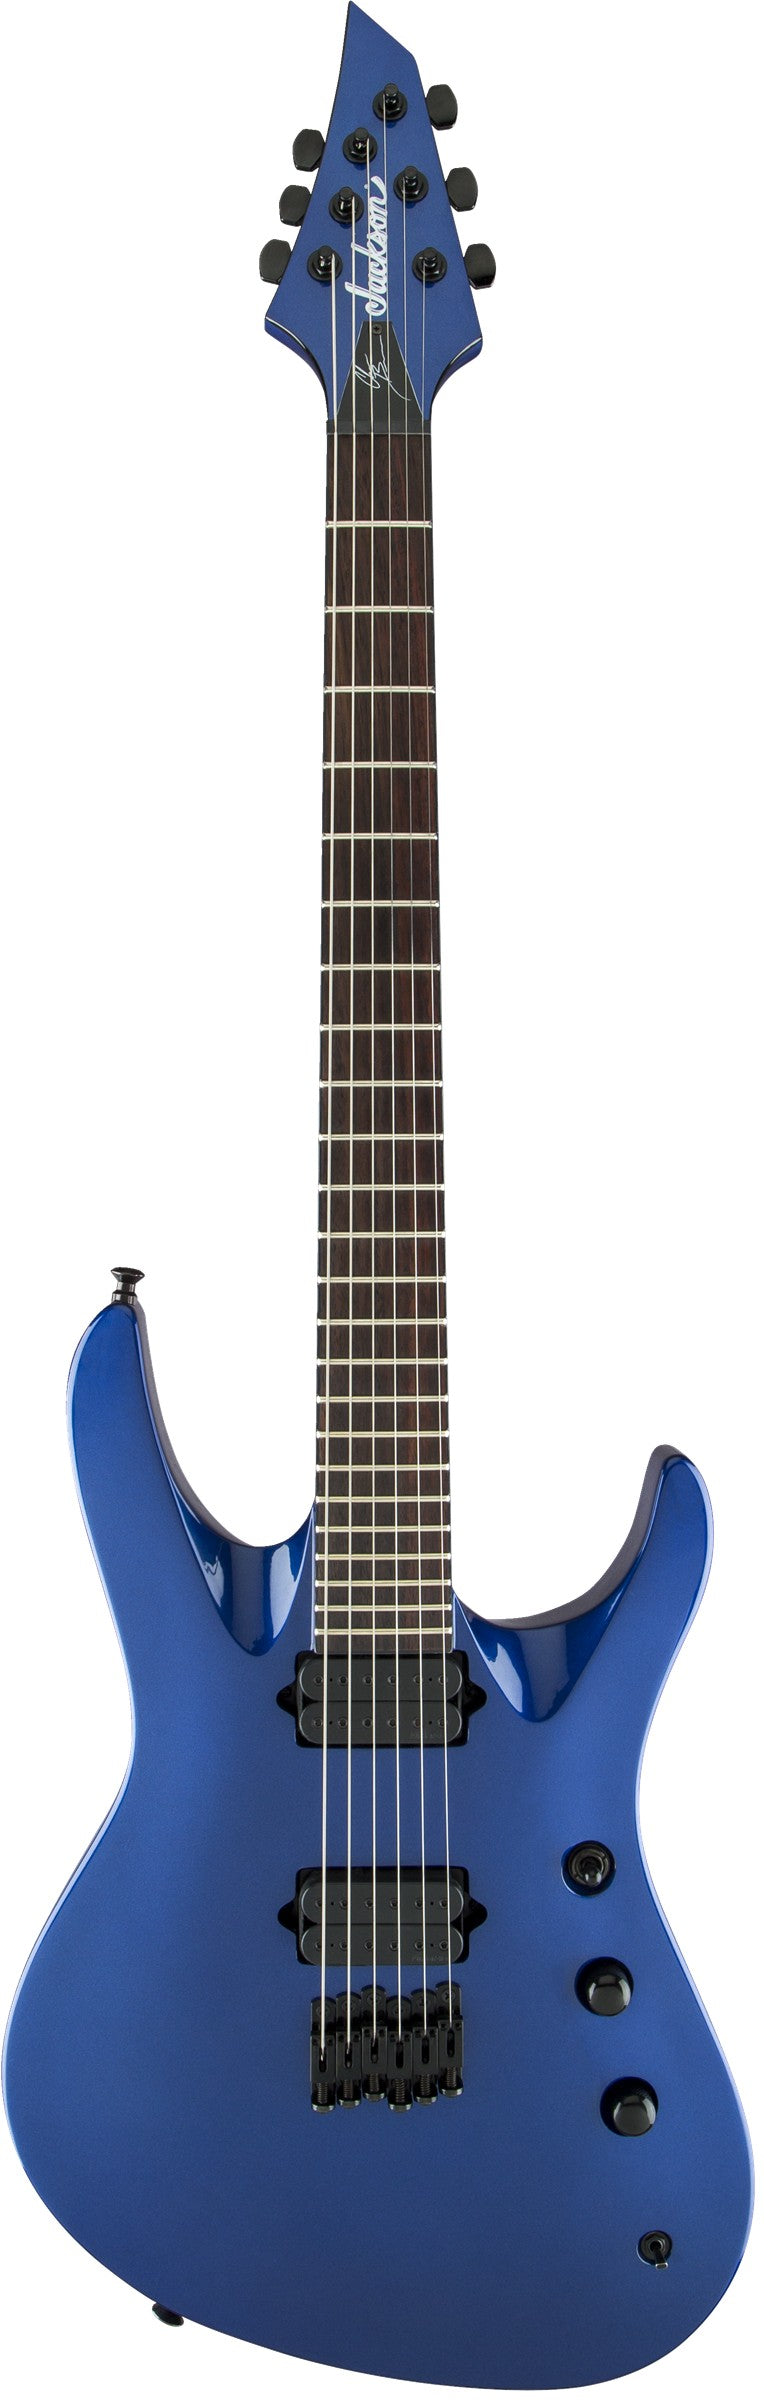 Jackson Pro Series Signature Chris Broderick Soloist HT6 Electric Guitar, Rosewood Fingerboard, Metallic Blue